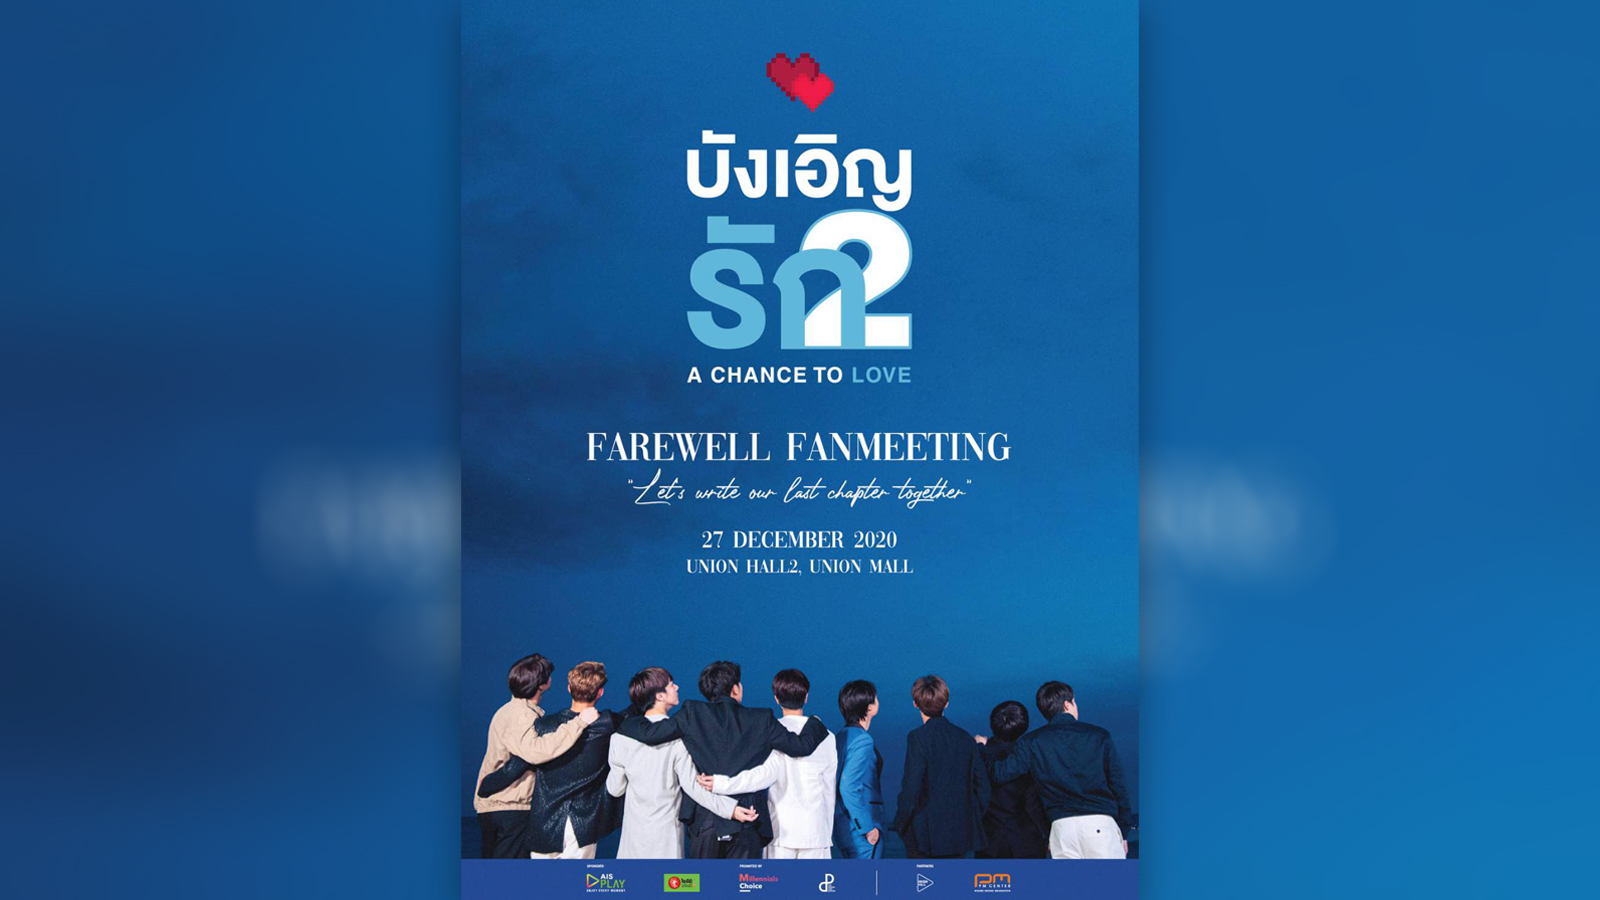 A Chance To Love FAREWELL FANMEETING